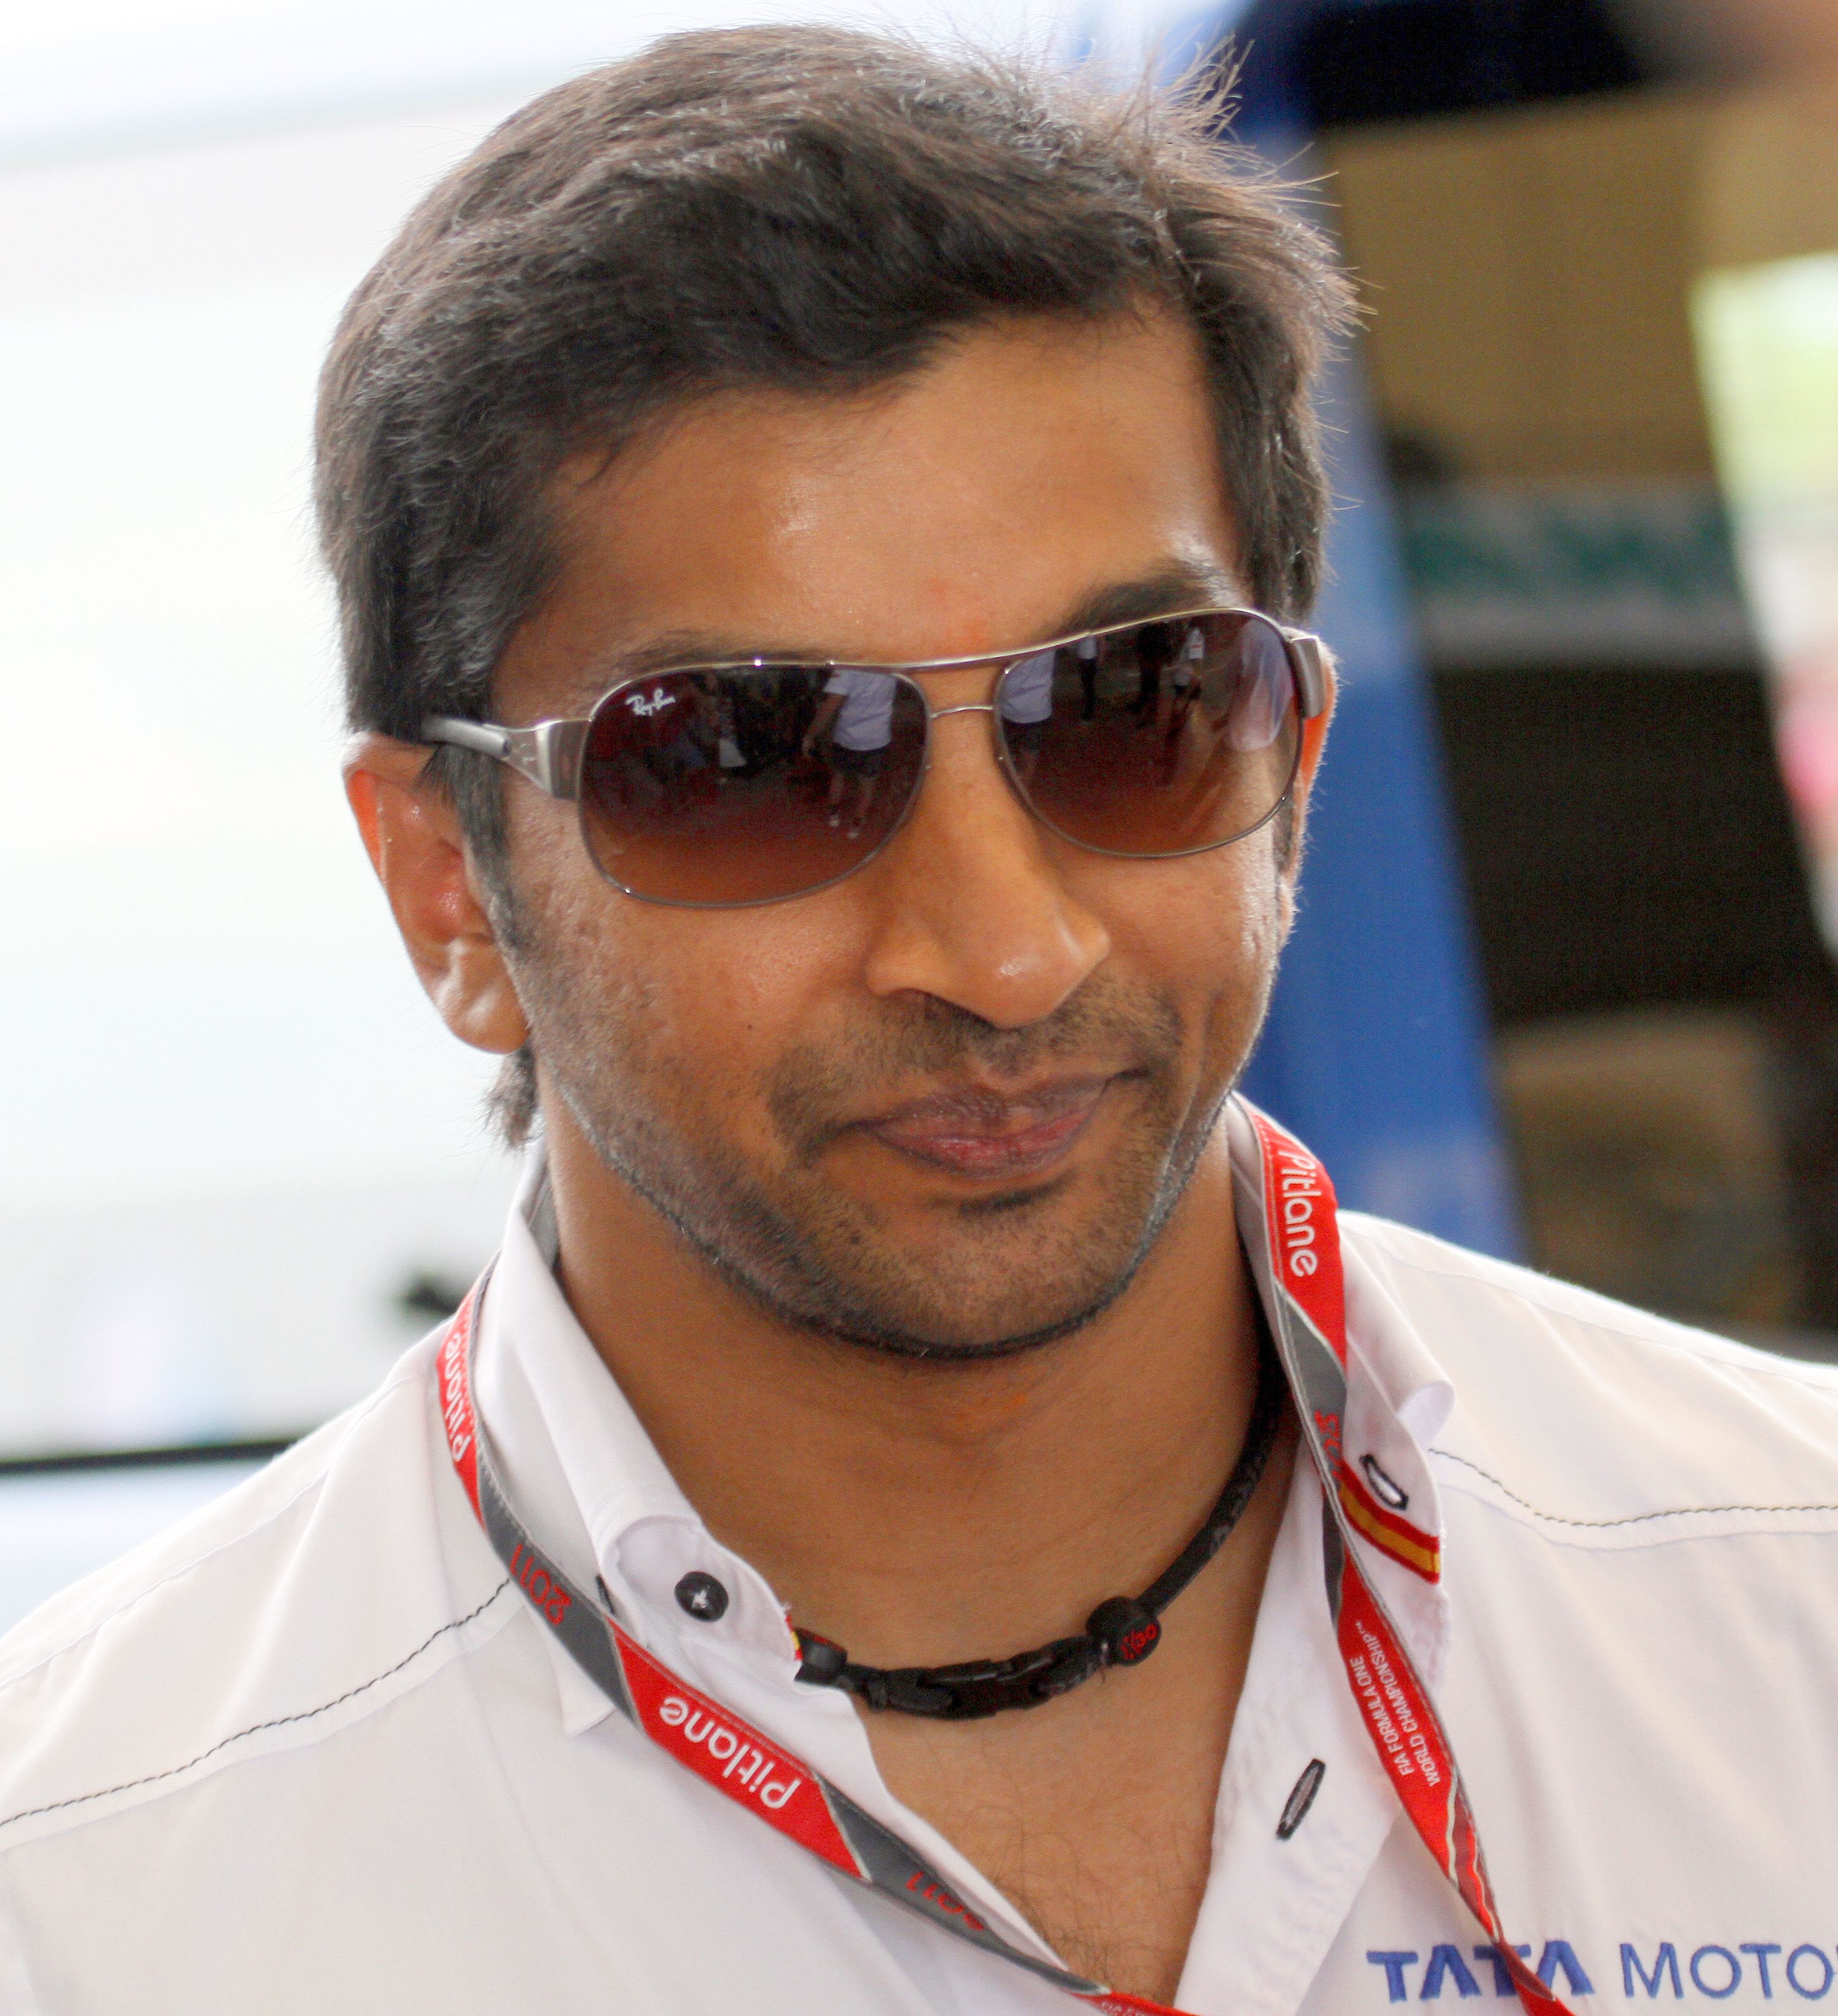 The 41-year old son of father (?) and mother(?) Narain Karthikeyan in 2018 photo. Narain Karthikeyan earned a  million dollar salary - leaving the net worth at 2 million in 2018